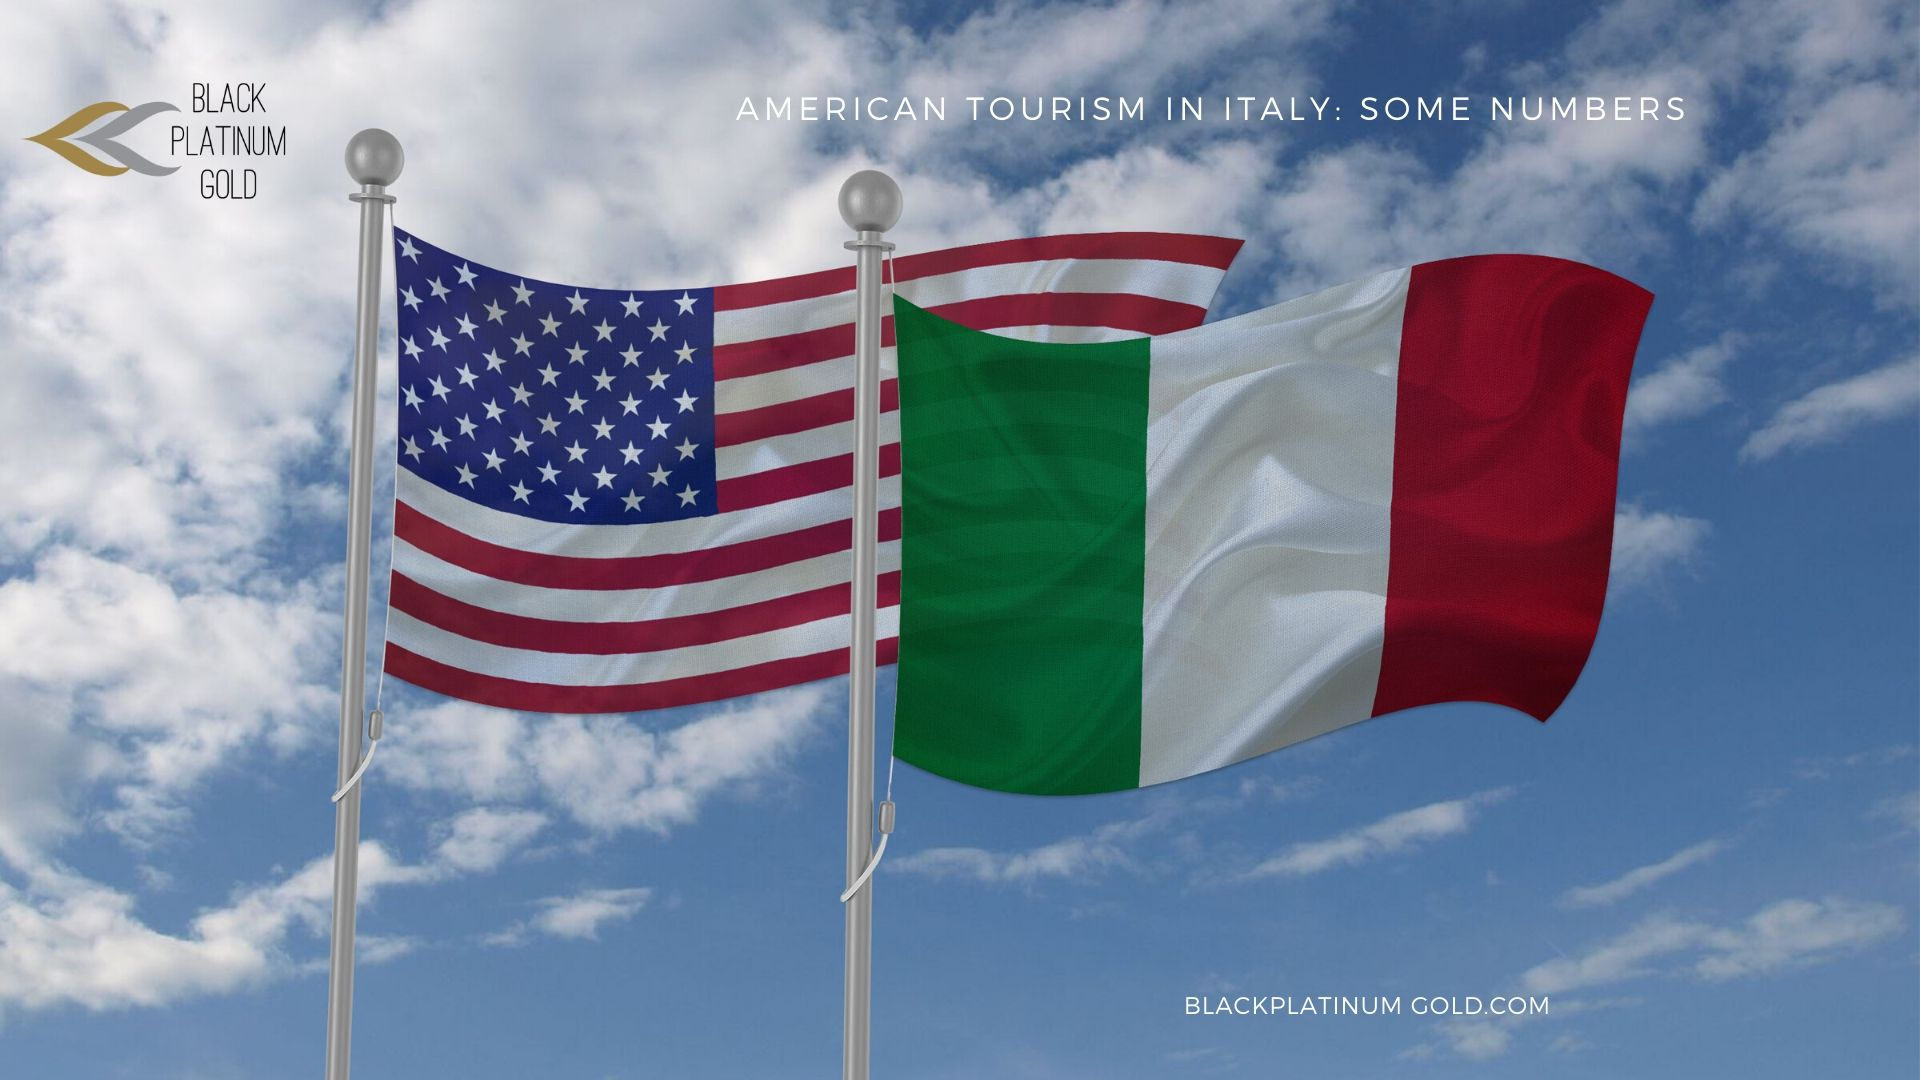 American tourism in Italy: some numbers - by Black Platinum Gold